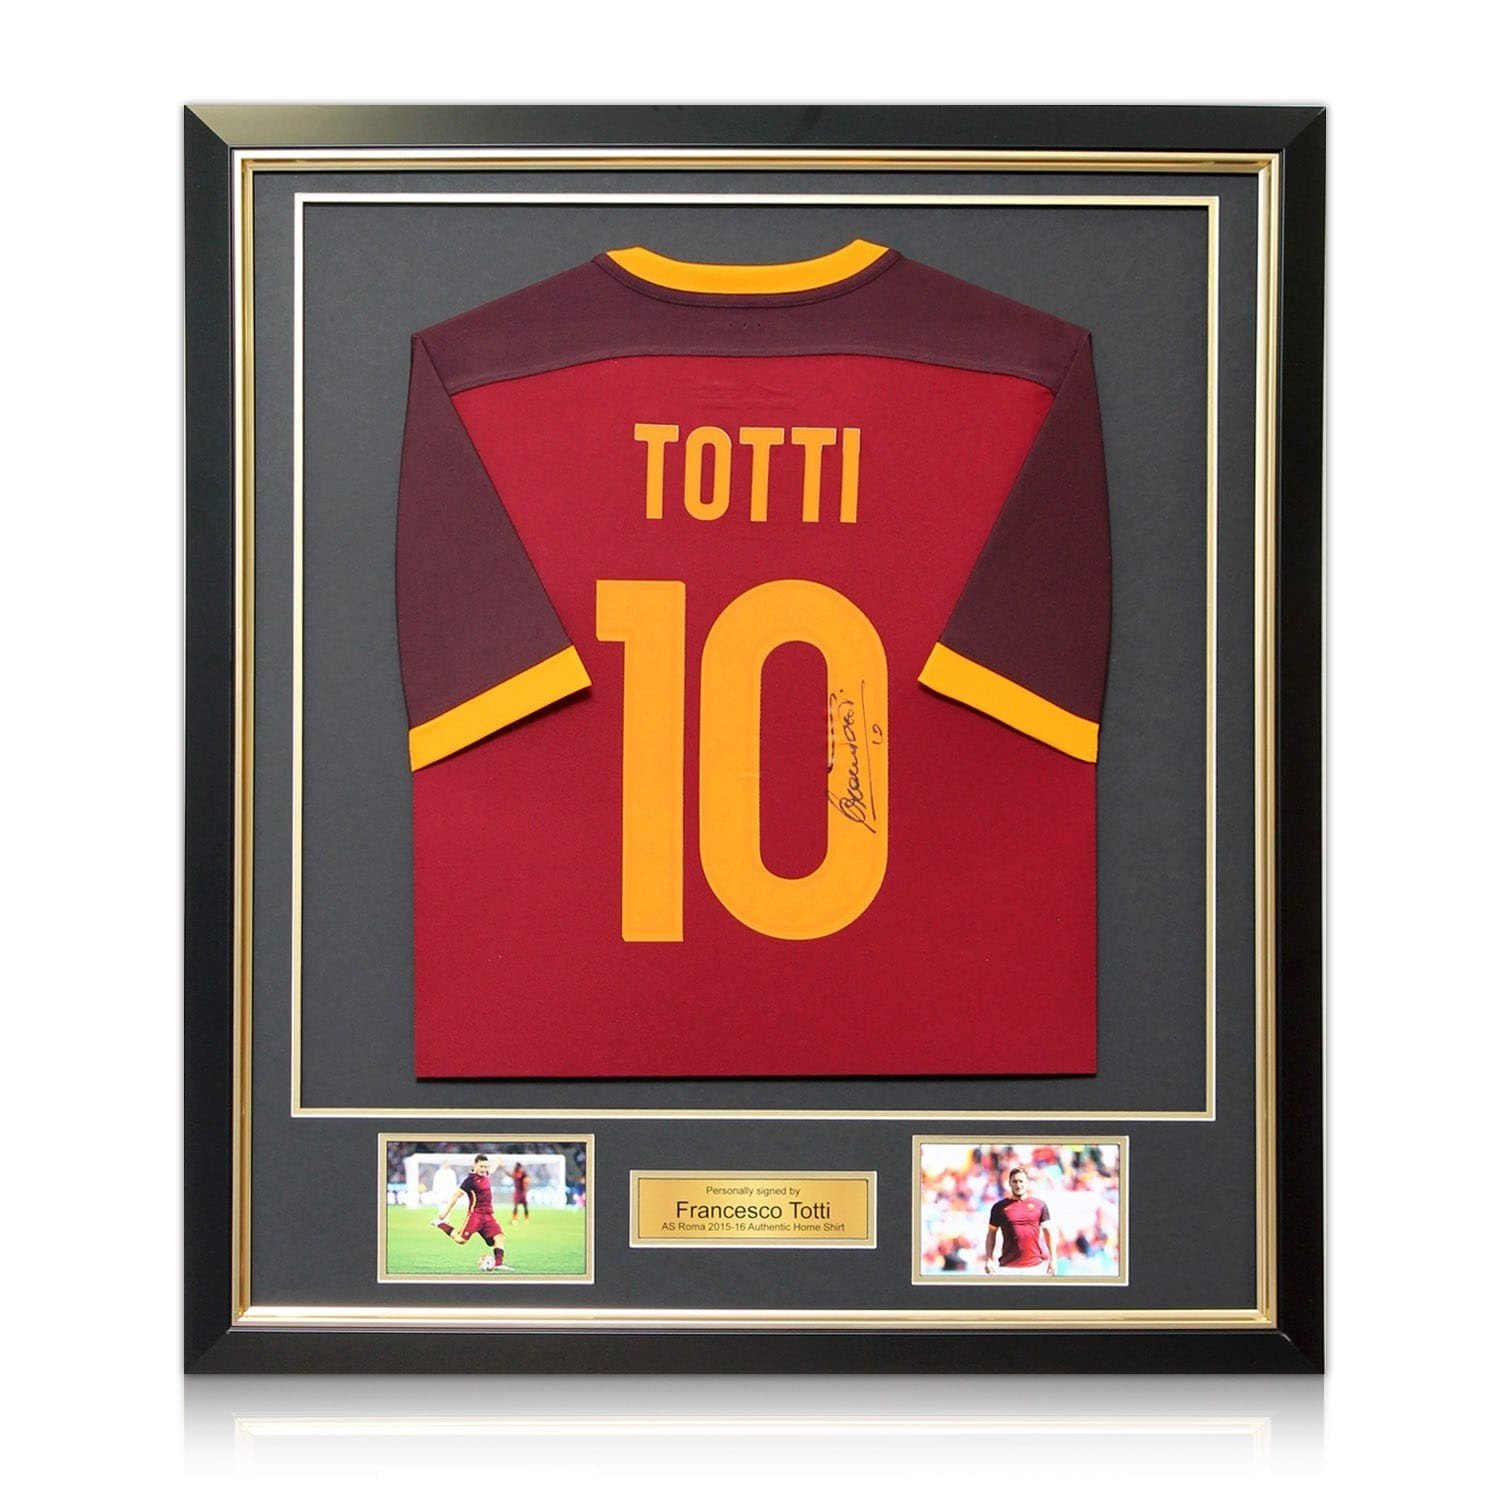 91c2499156e Francesco Totti Signed AS Roma 2015-16 Authentic Home Jersey In Deluxe  Black Frame With Gold Inlay at Amazon's Sports Collectibles Store